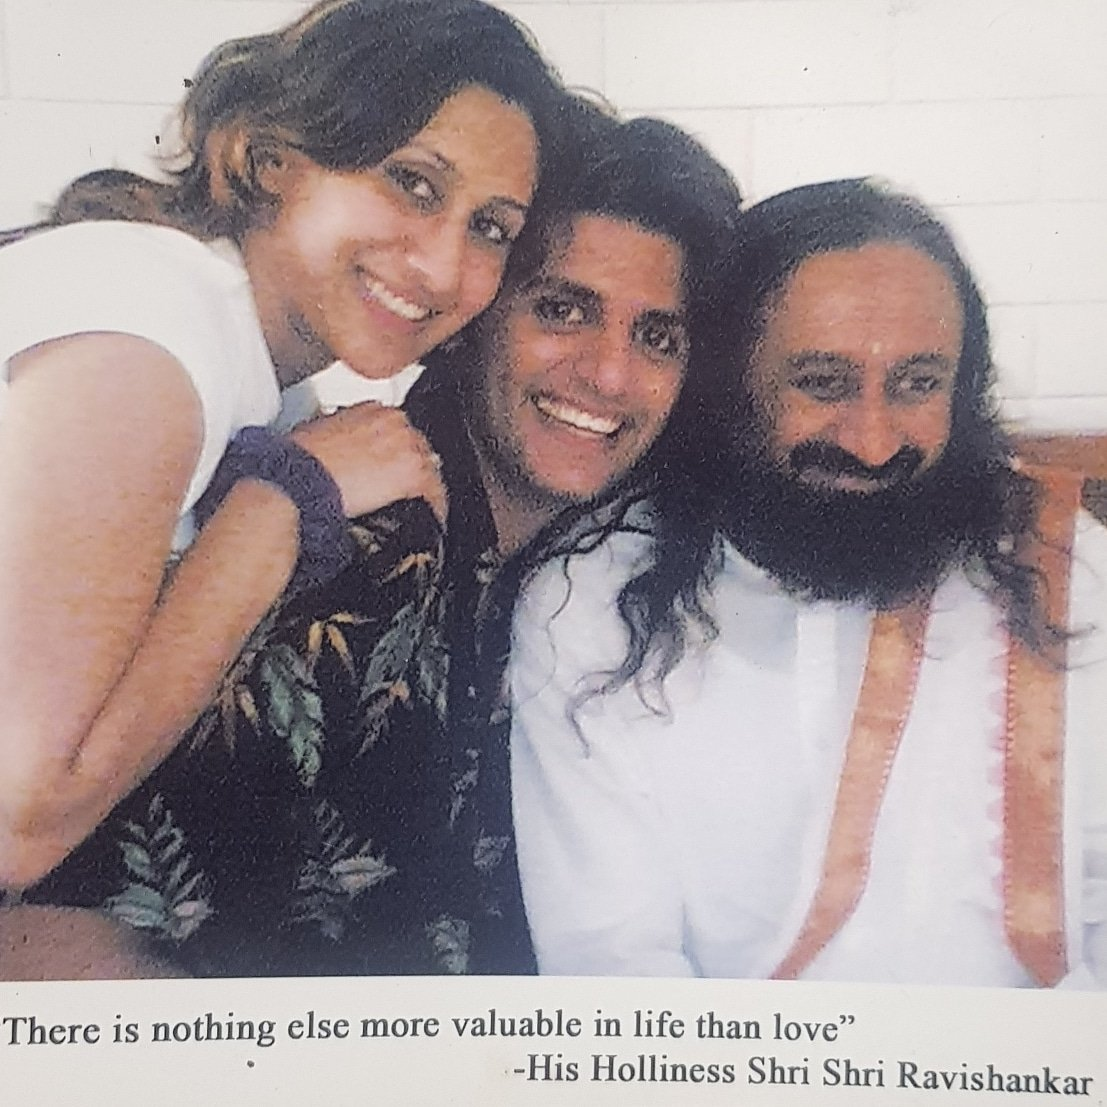 "Came across this beautiful picture of #guruji @SriSri was taken during my wedding in #banglore ashram year 2006 ""There is nothing else more valuable in life, than love"" simple truth of life which is called the #artofliving, not just the organisation.But the actual ART of living. https://t.co/Ea5ZIUuwHh"